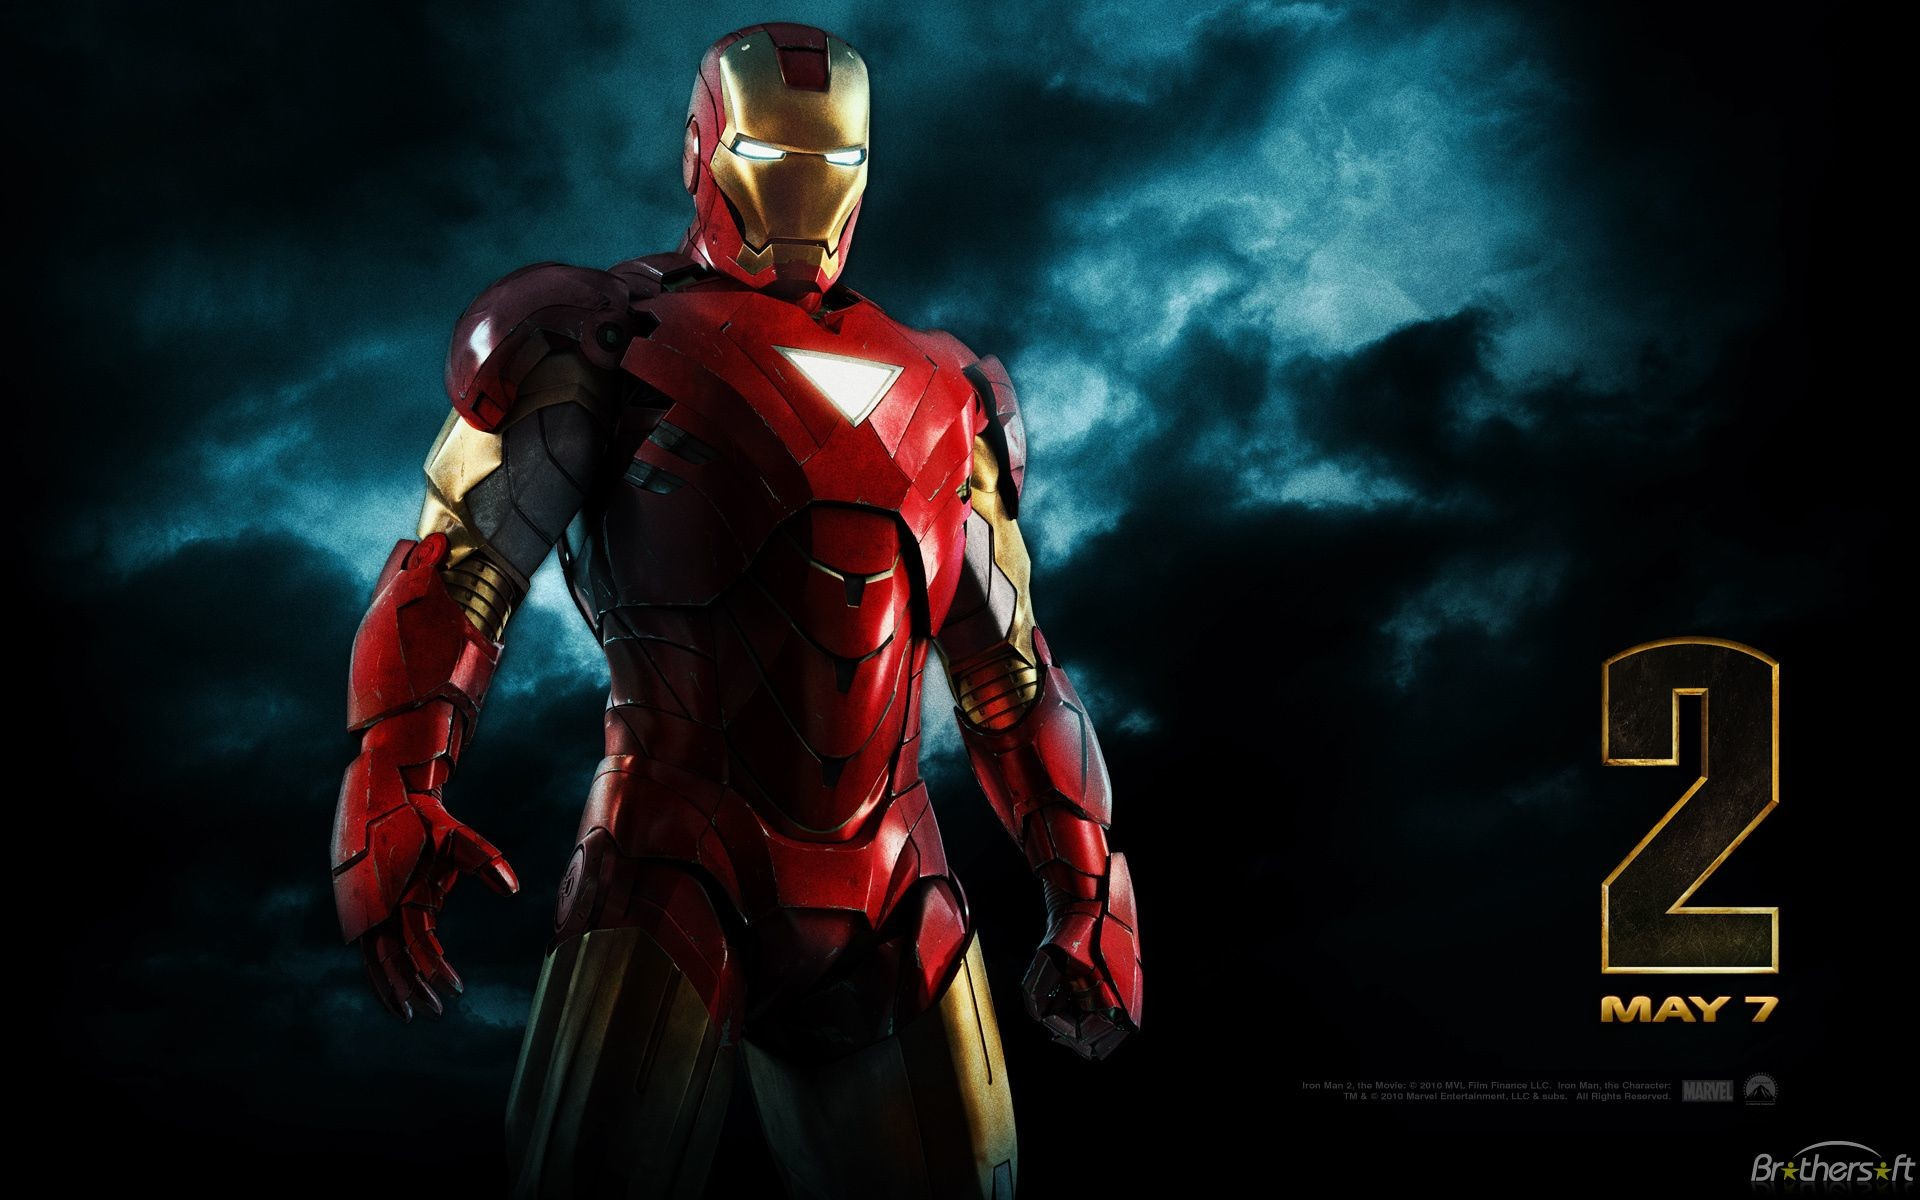 1920x1200 Download Free Iron Man 2 Wallpaper, Iron Man 2 Wallpaper 1.0 Download